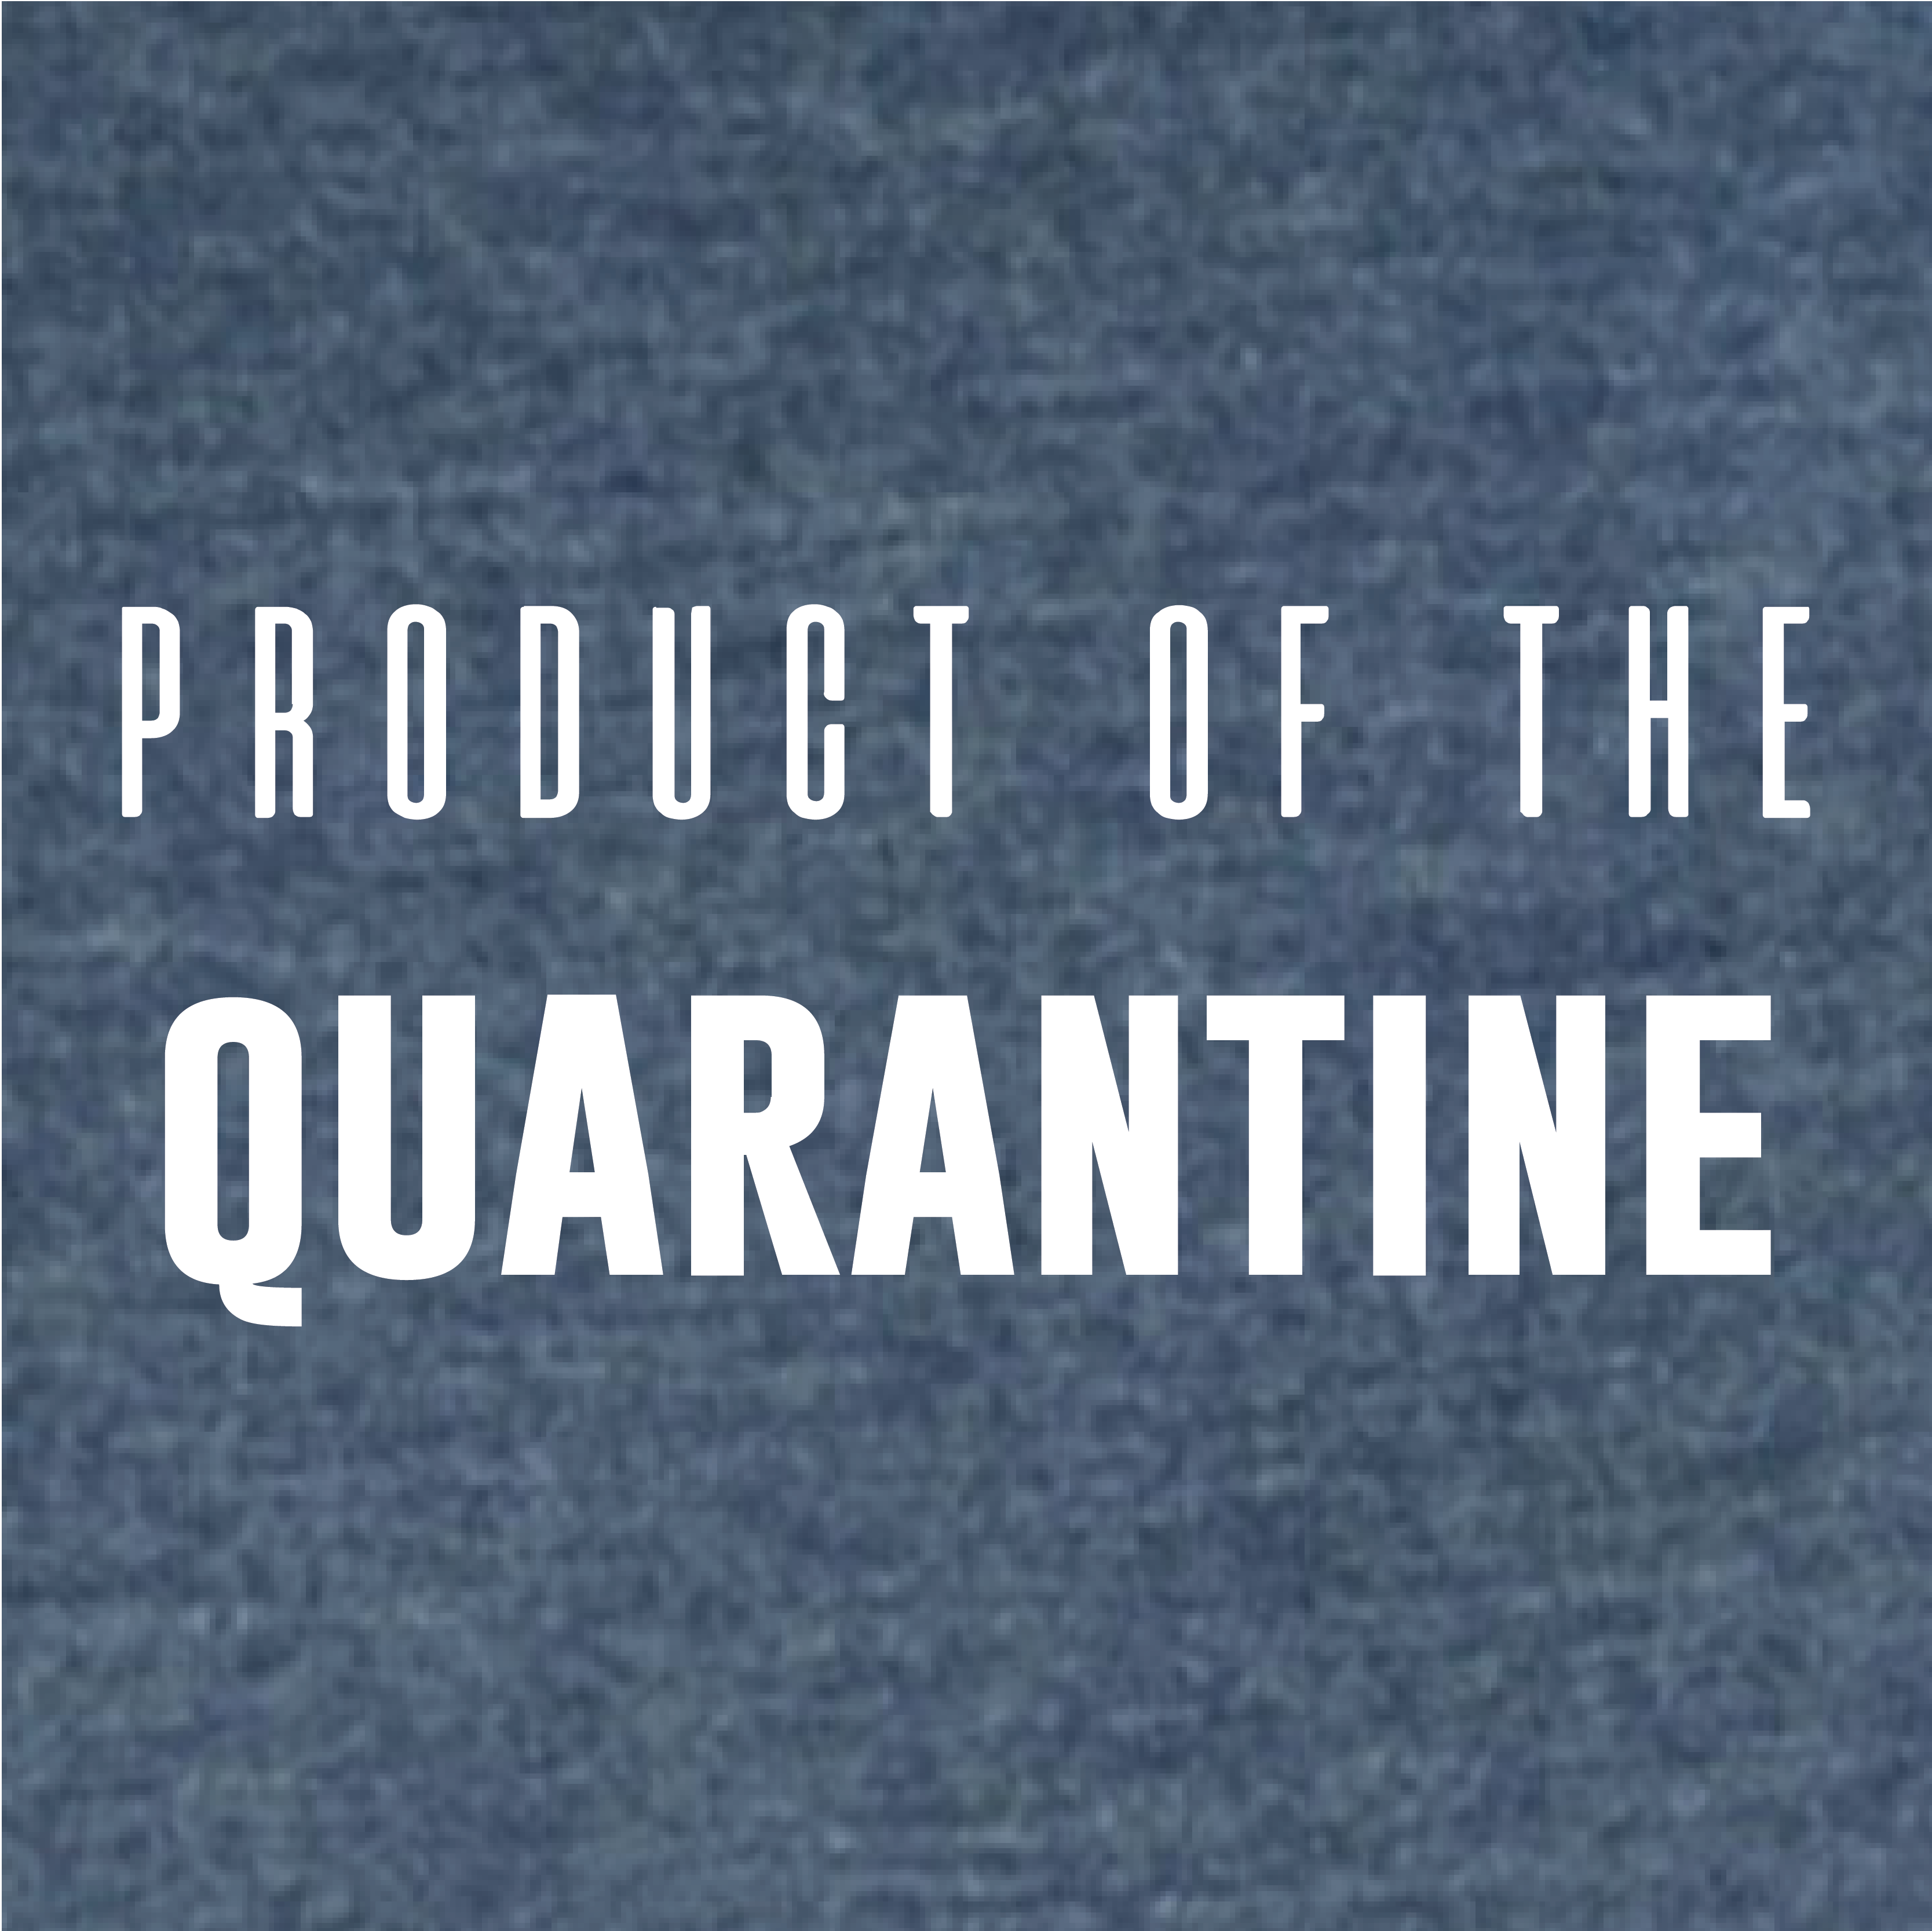 Quarantaine design 3 -  Product of